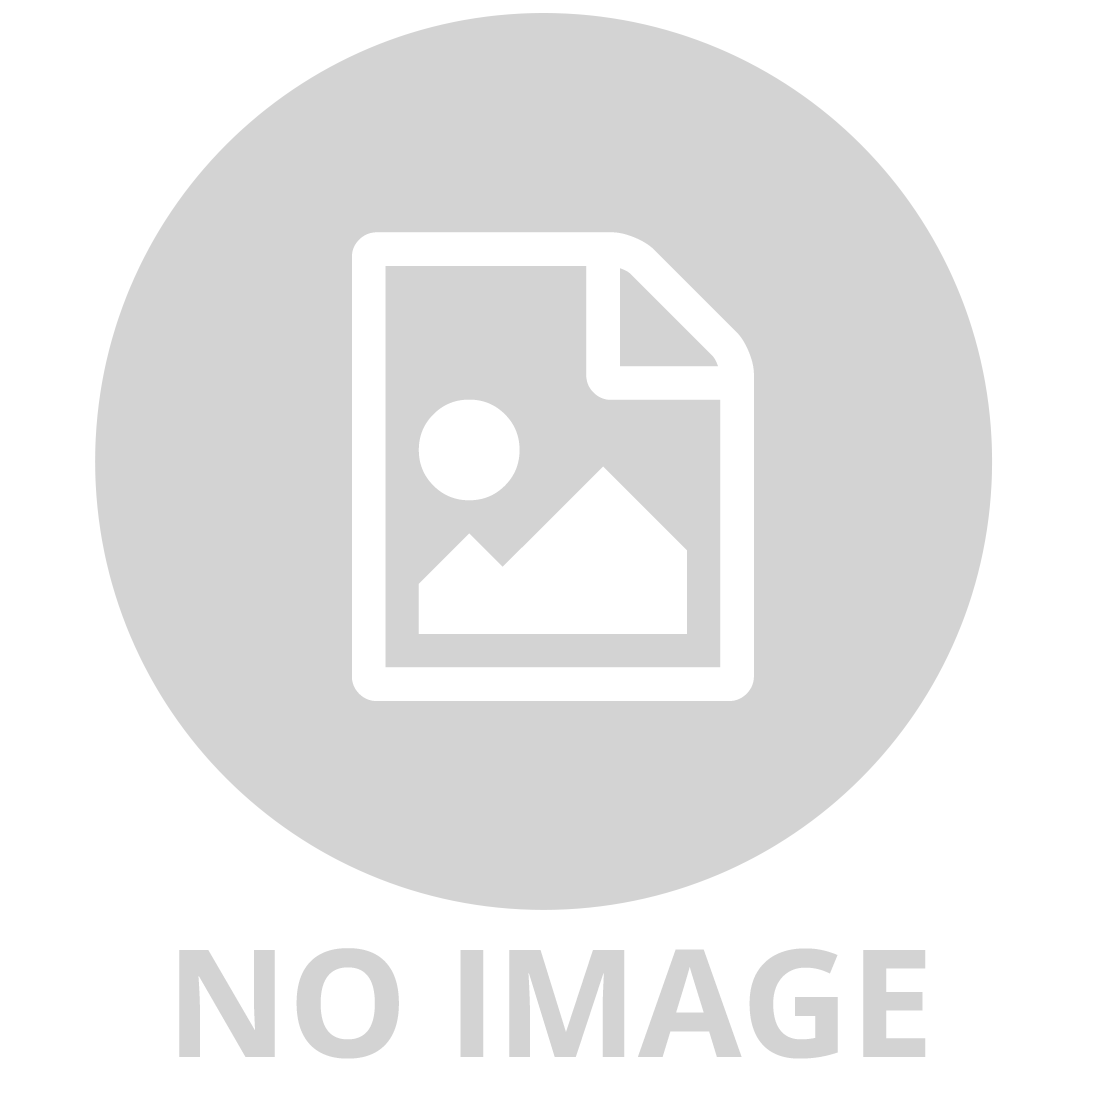 WOOD WORX FIRE DRAGON